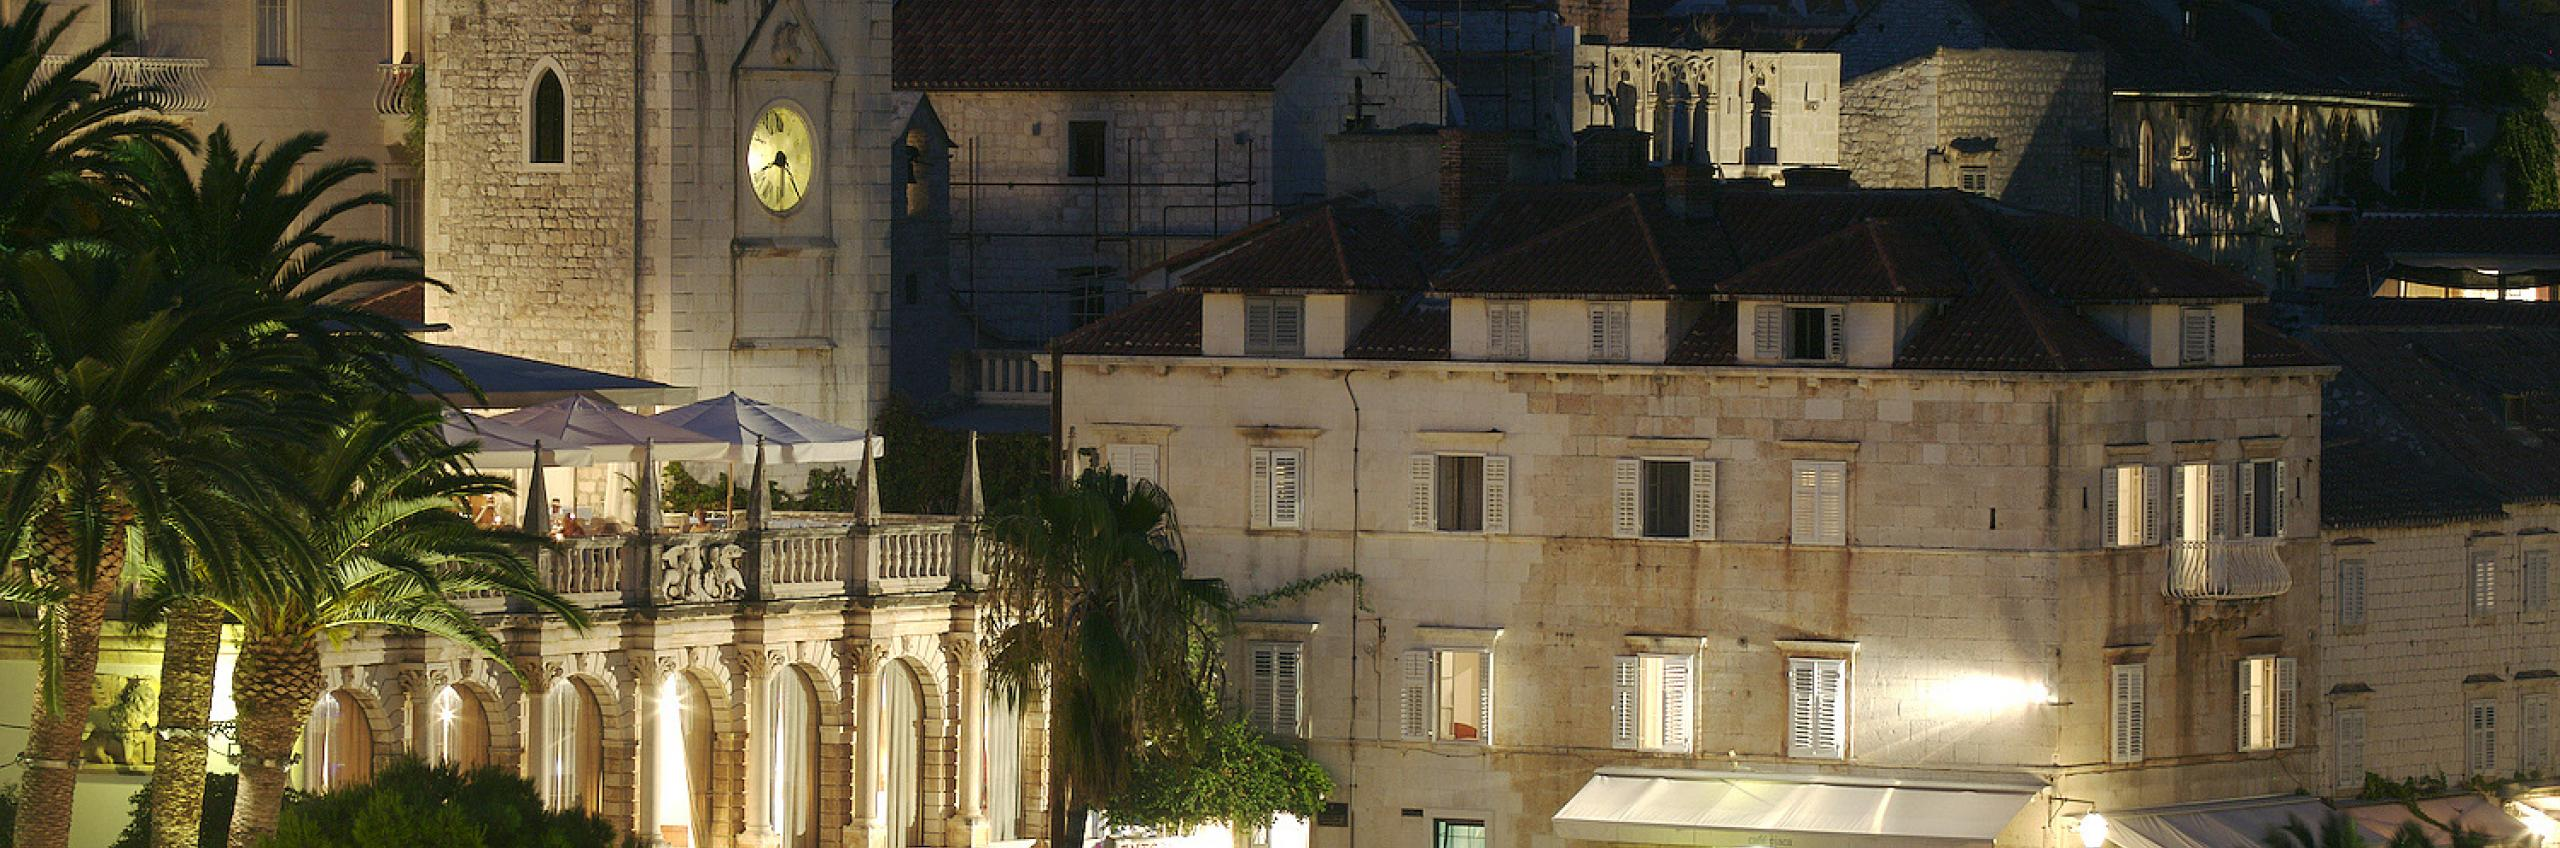 The Palace, hvar